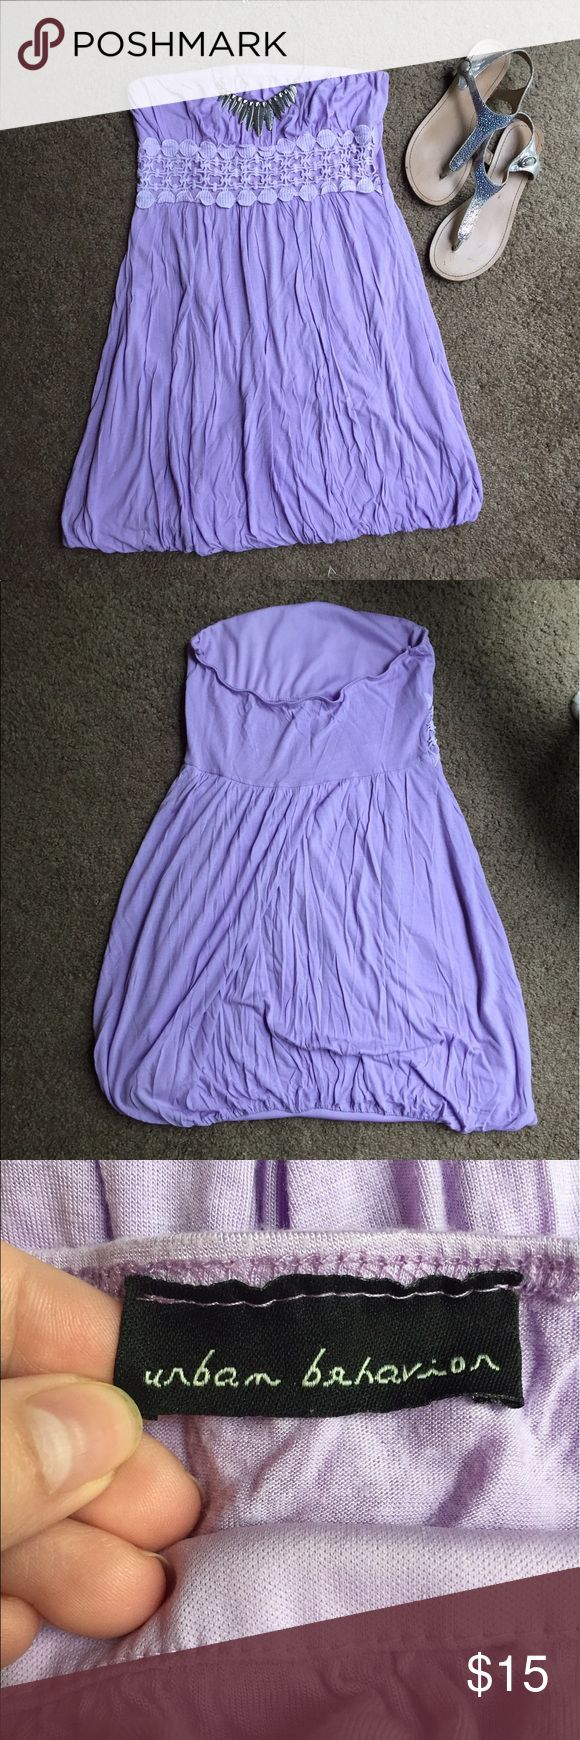 Urban Behavior Lilac Dress Good condition! Such a cute little lilac dress! Perfect for attending all those up coming wedding/baby showers! Urban Behavior Dresses Strapless